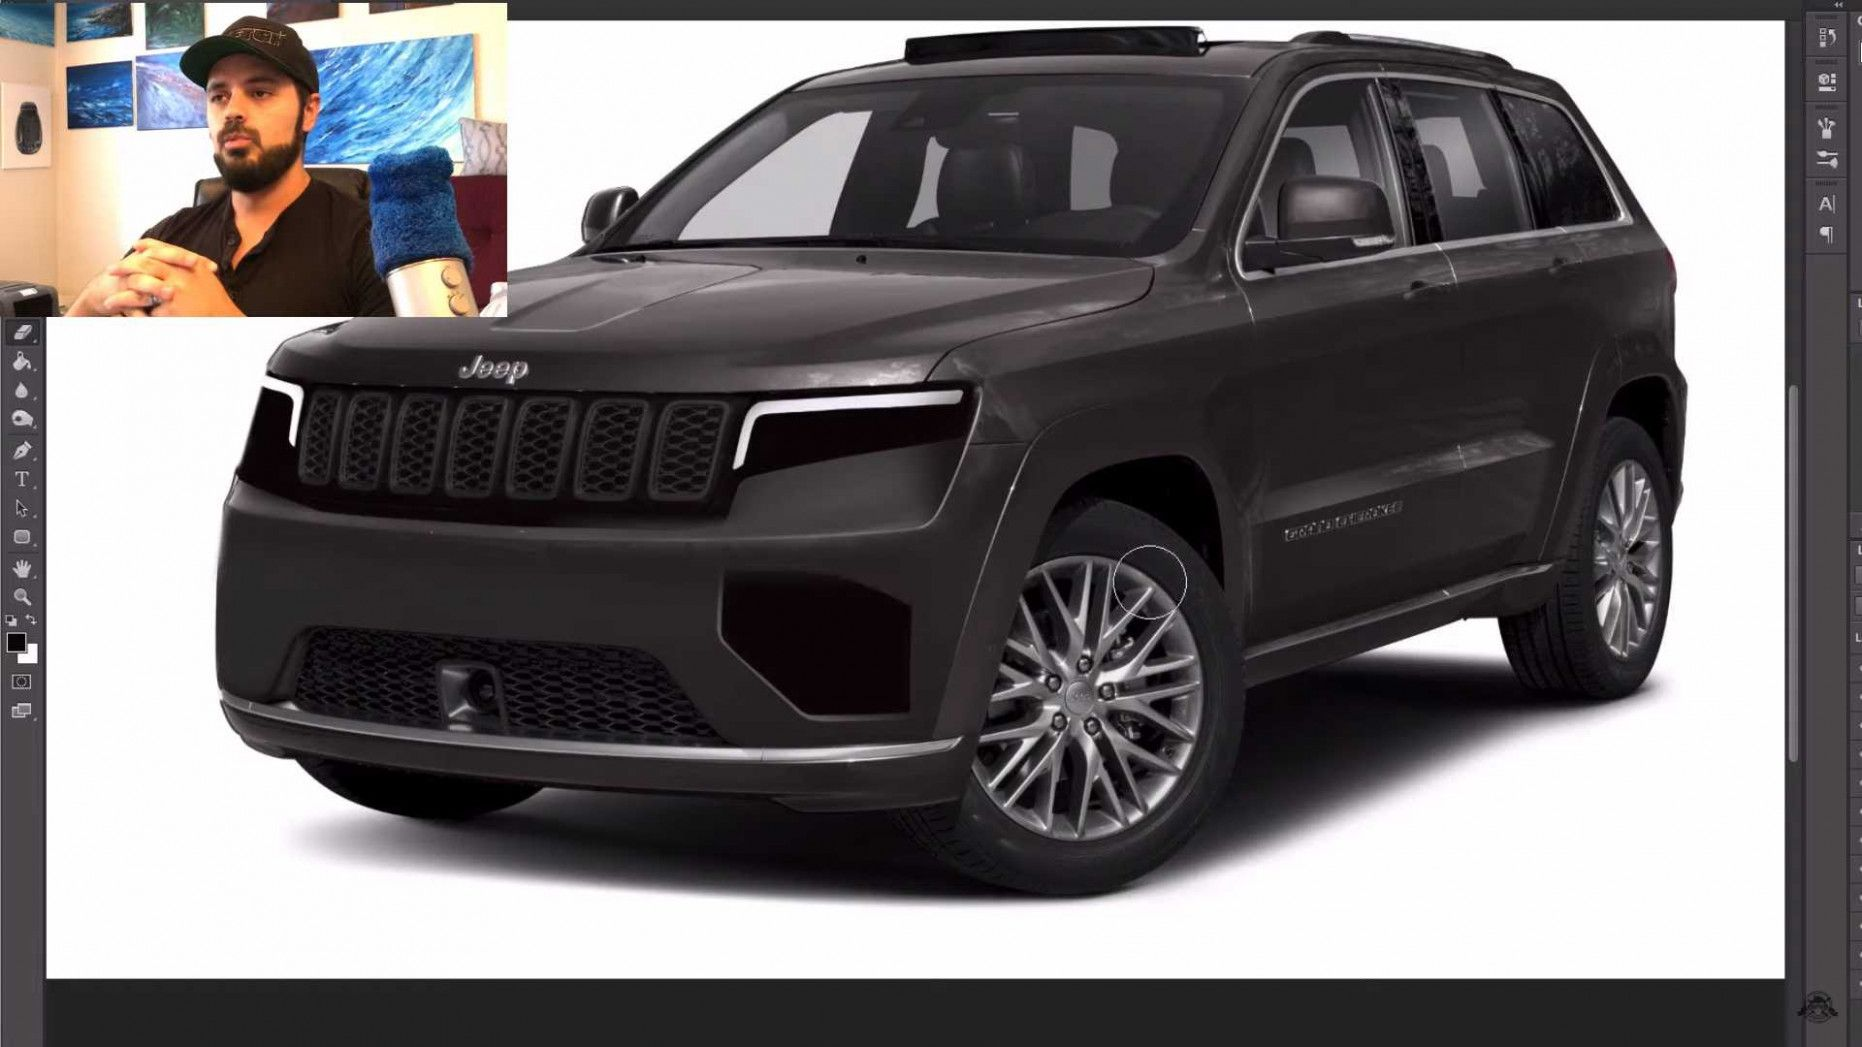 2021 Jeep Grand Cherokee Srt8 New Assessment 2021 Jeep